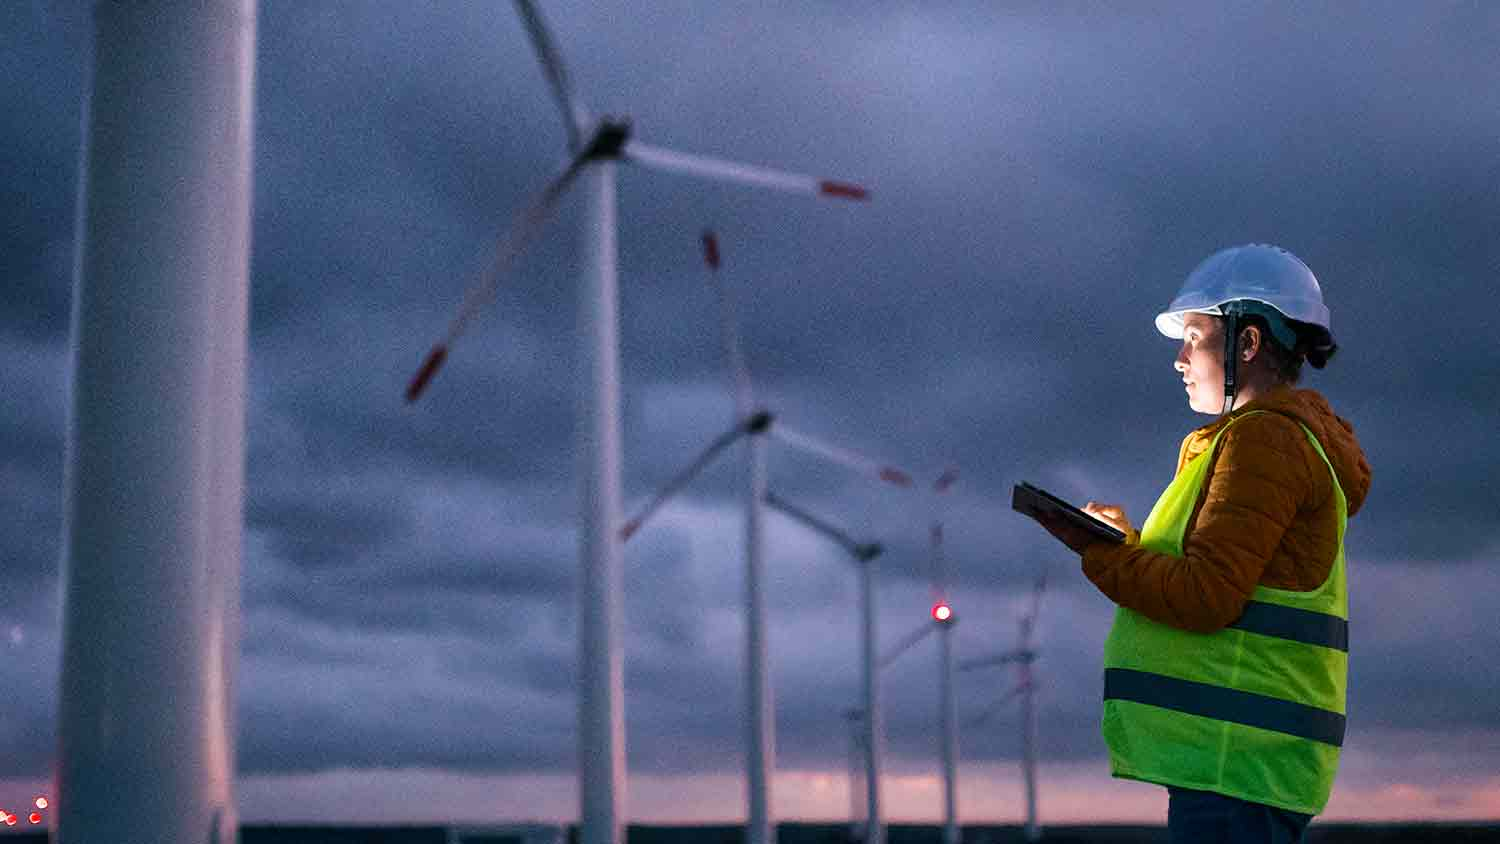 Engineer marking something on a tablet. The sky is dark and the tablet illuminates her face. The background is of wind turbines.